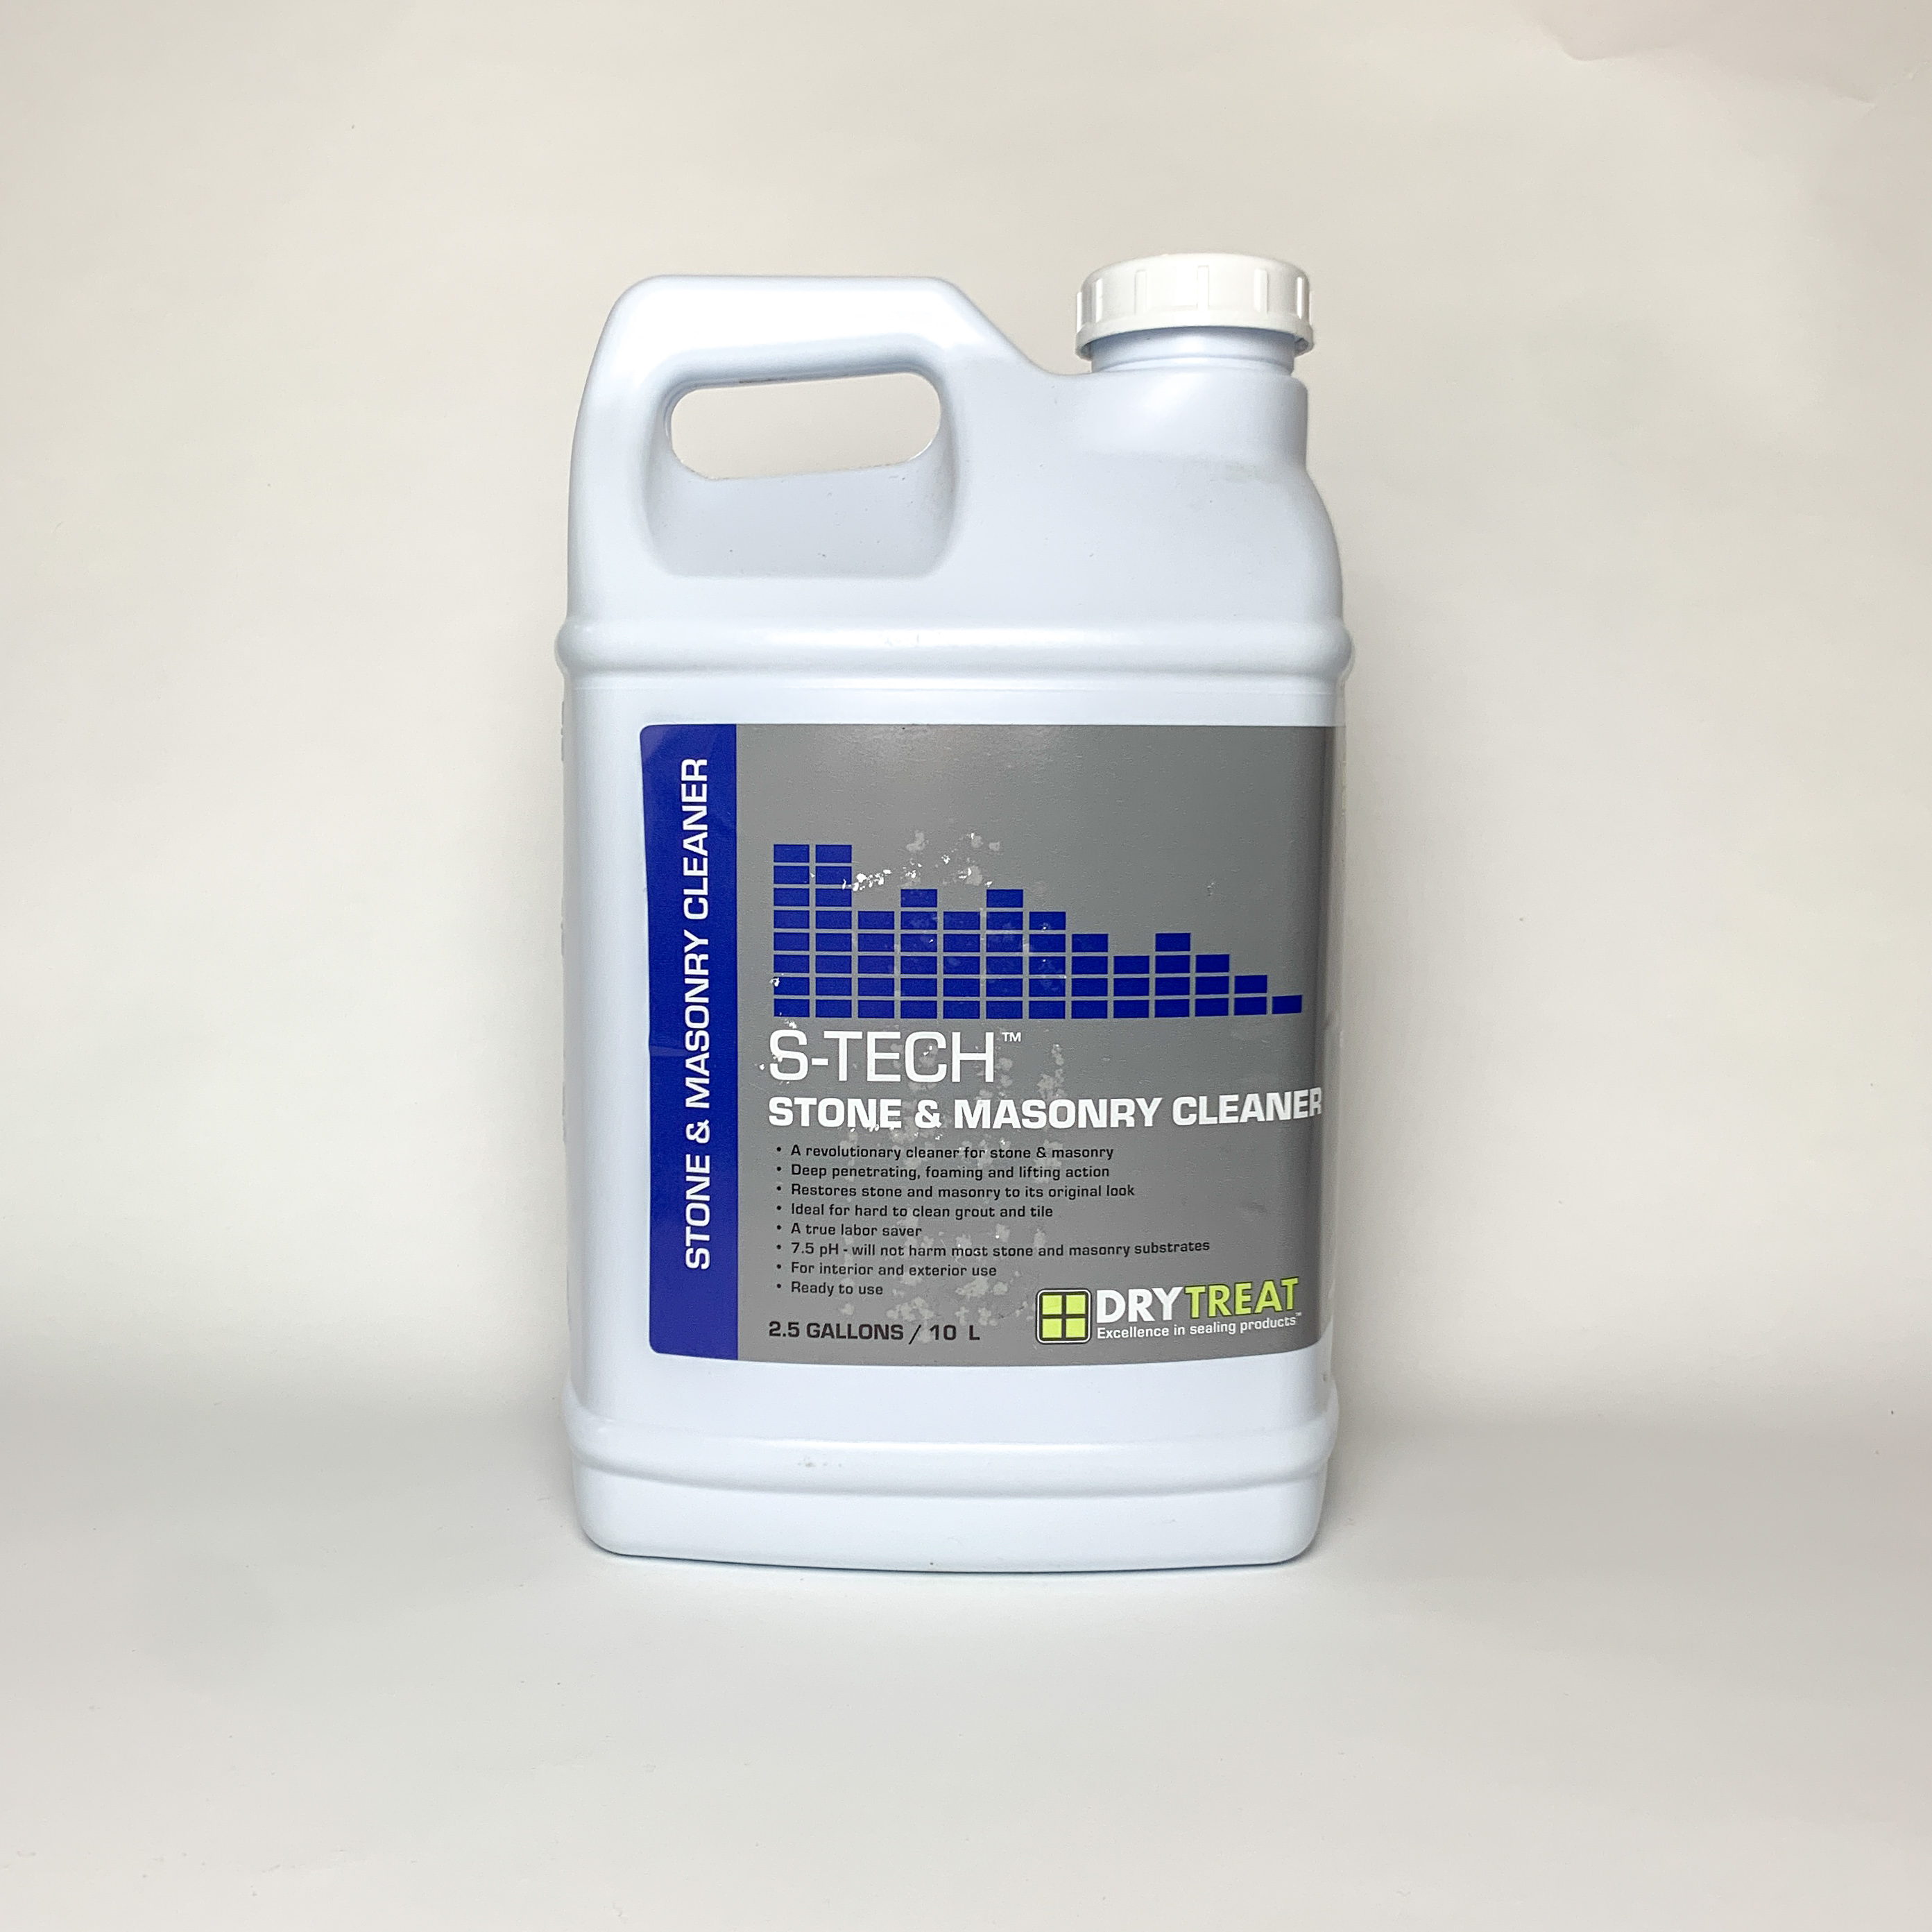 Stone & Masonry Cleaner Dry-Treat™